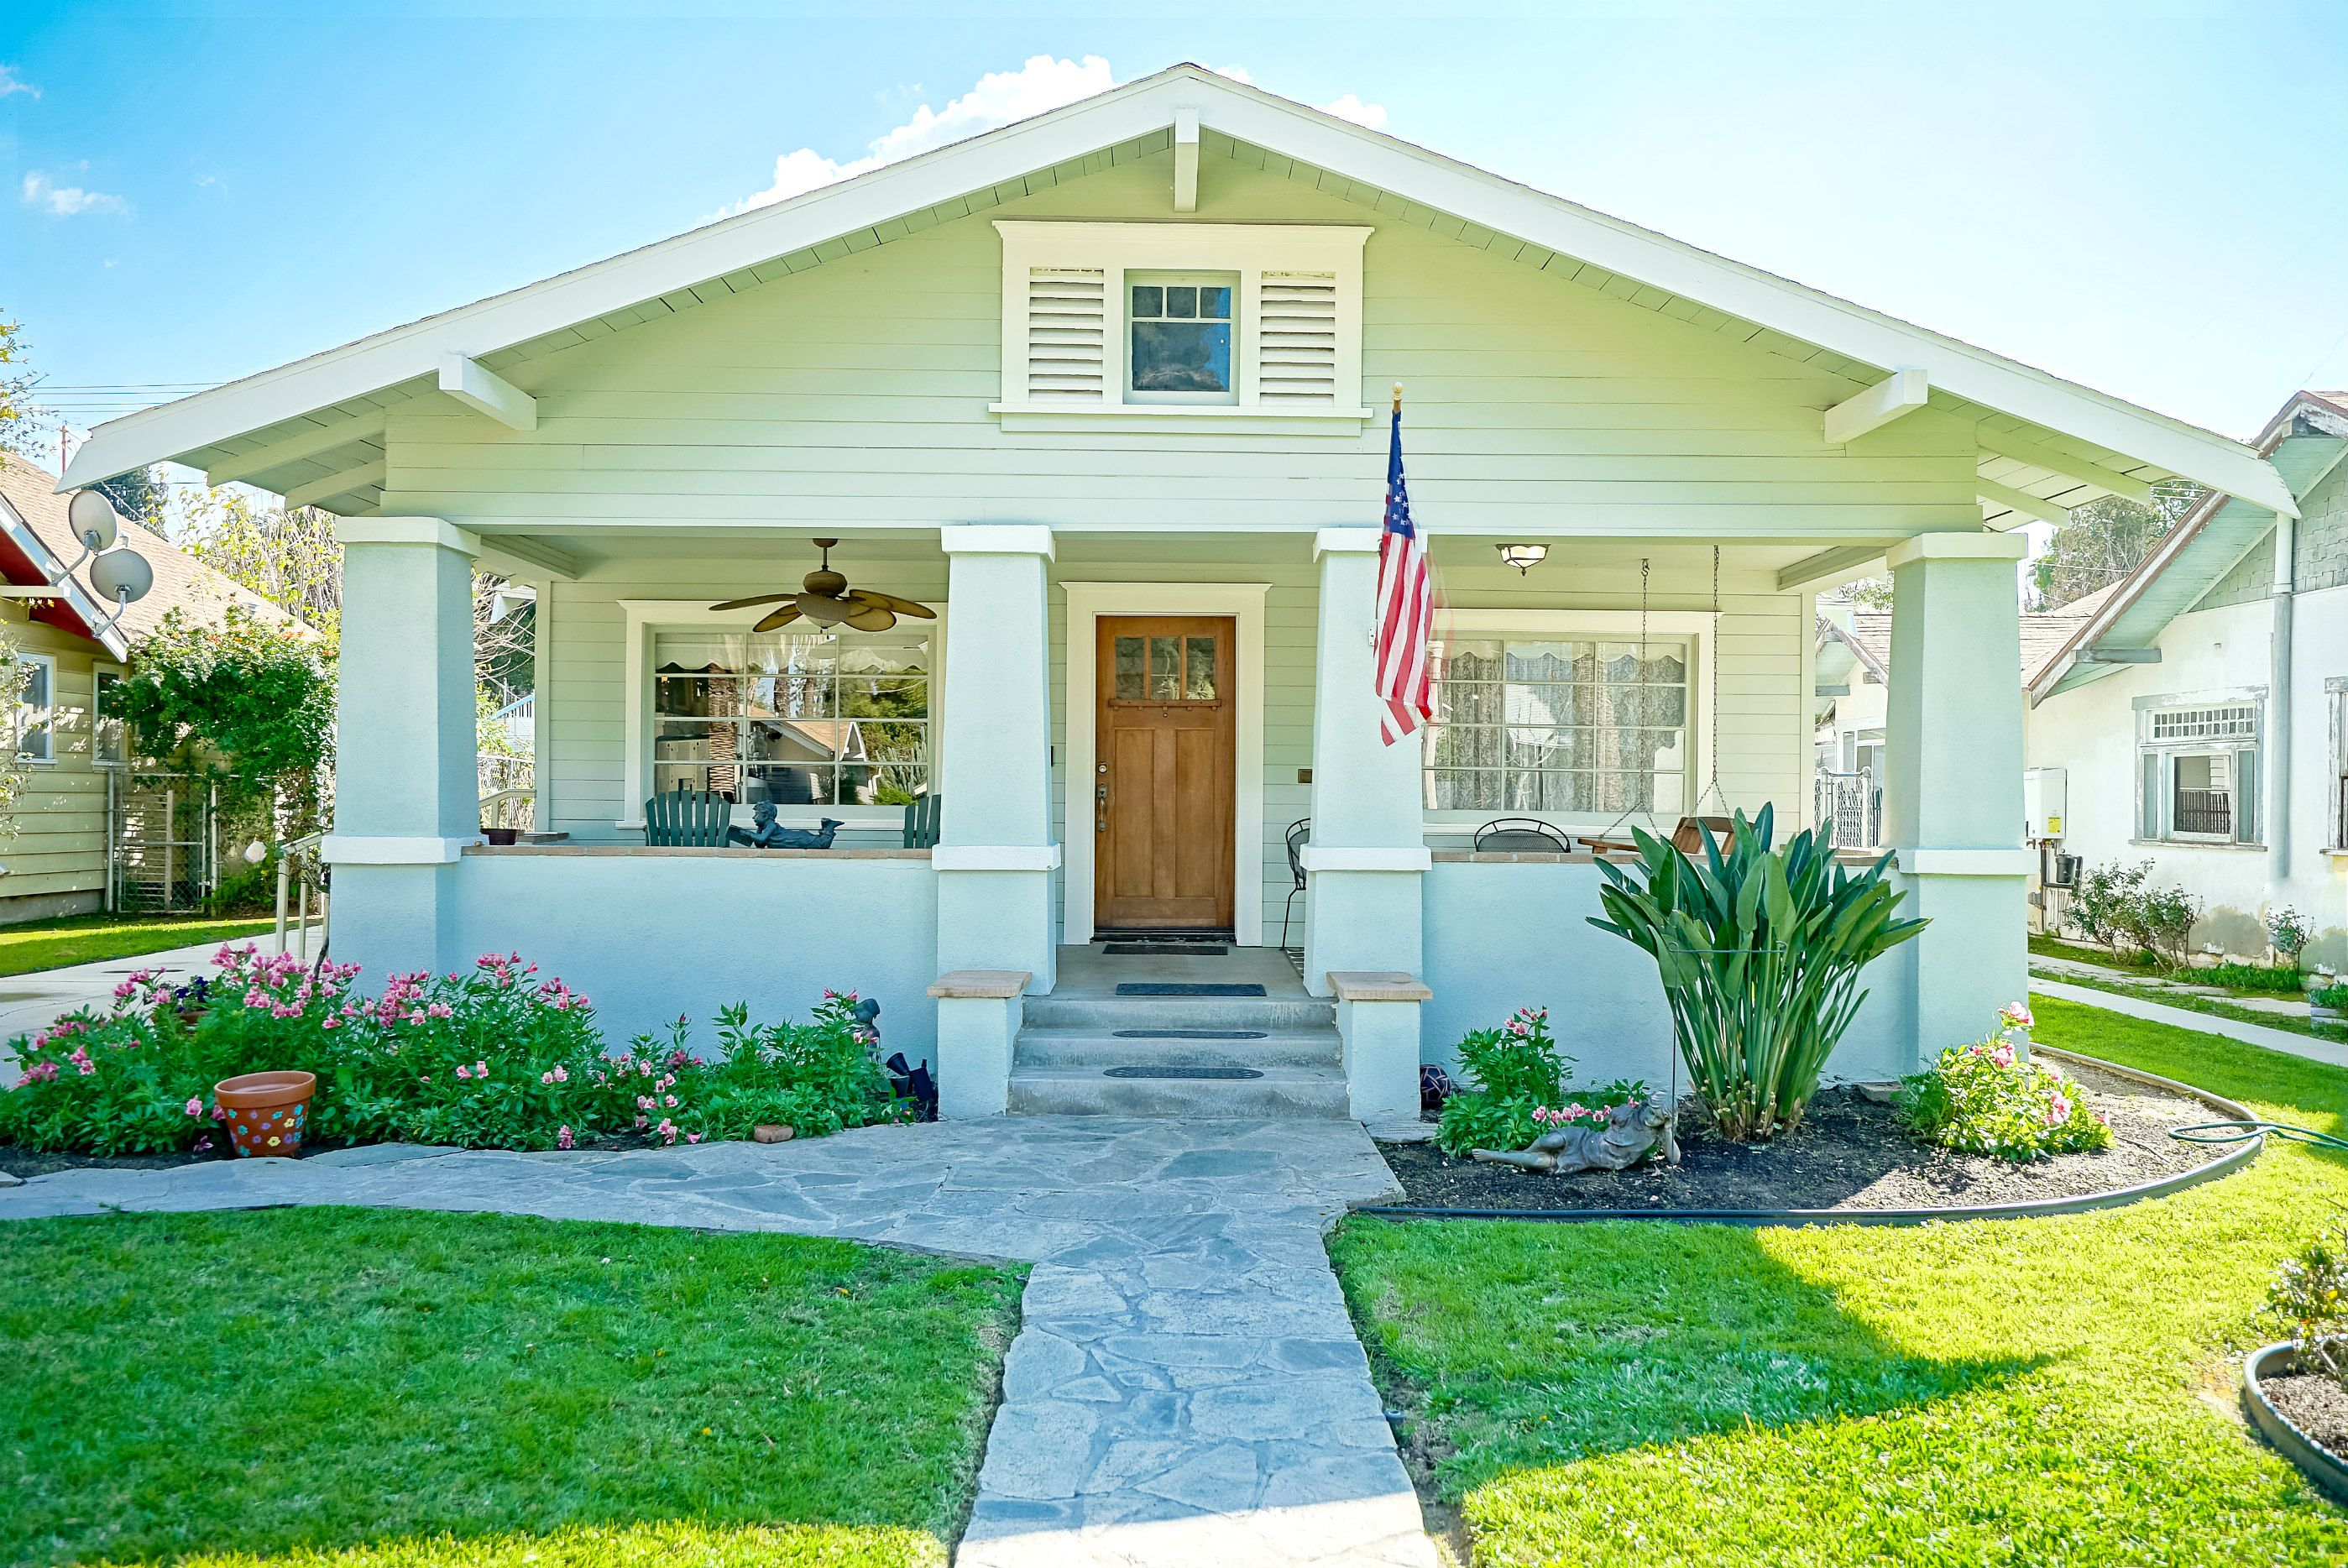 3932 Elmwood Ct., Riverside 92506 listed by THE SISTER TEAM